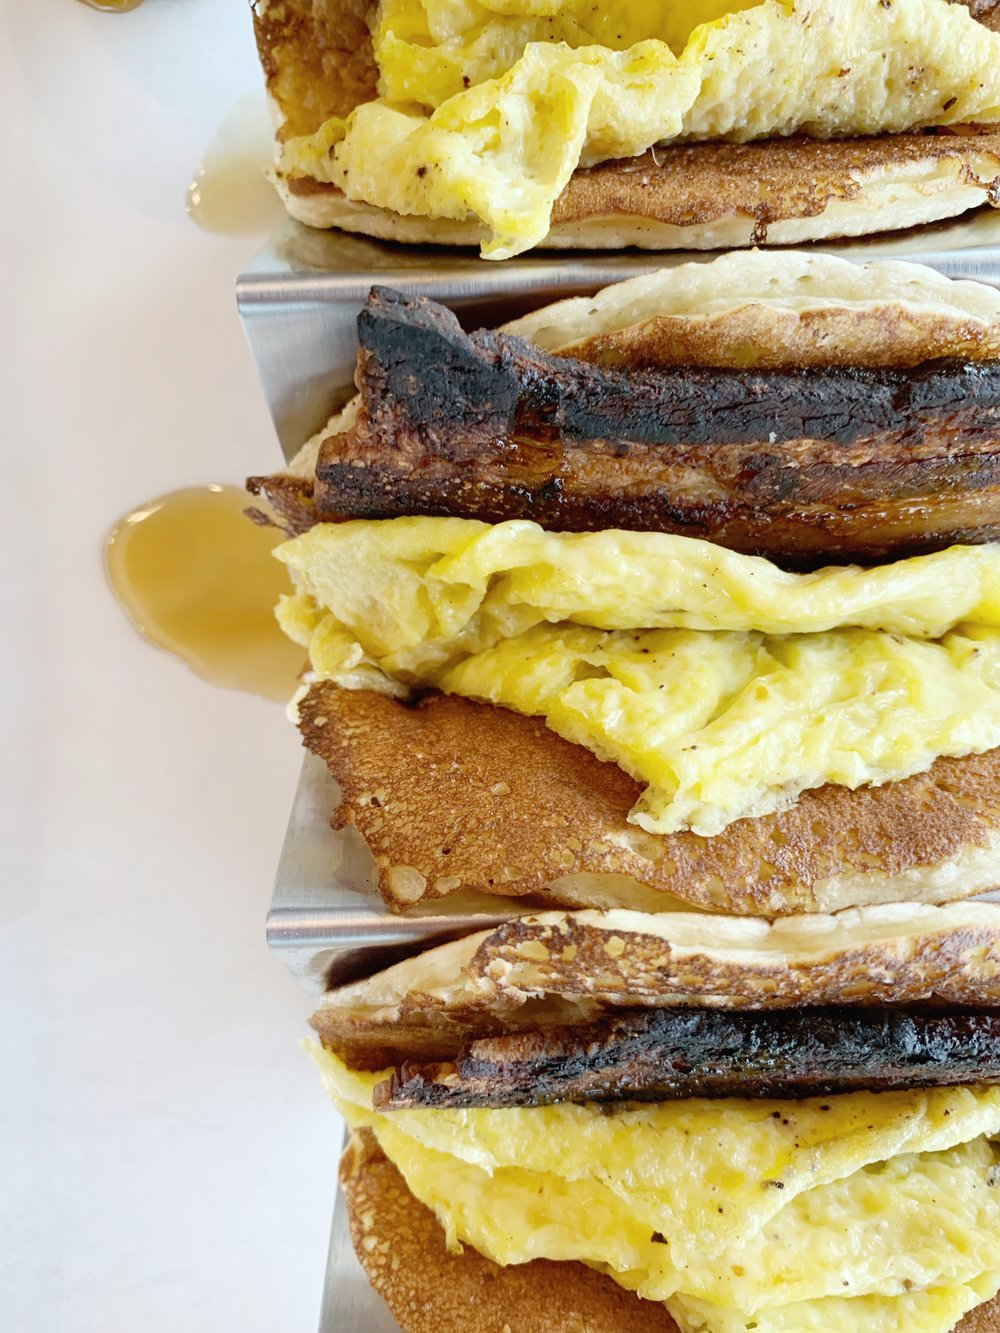 Pancake Tacos - Fluffy pancakes filled with house bacon and scrambled eggs with spiced maple syrup to dipPancake. Tacos. Is there anything else to say?